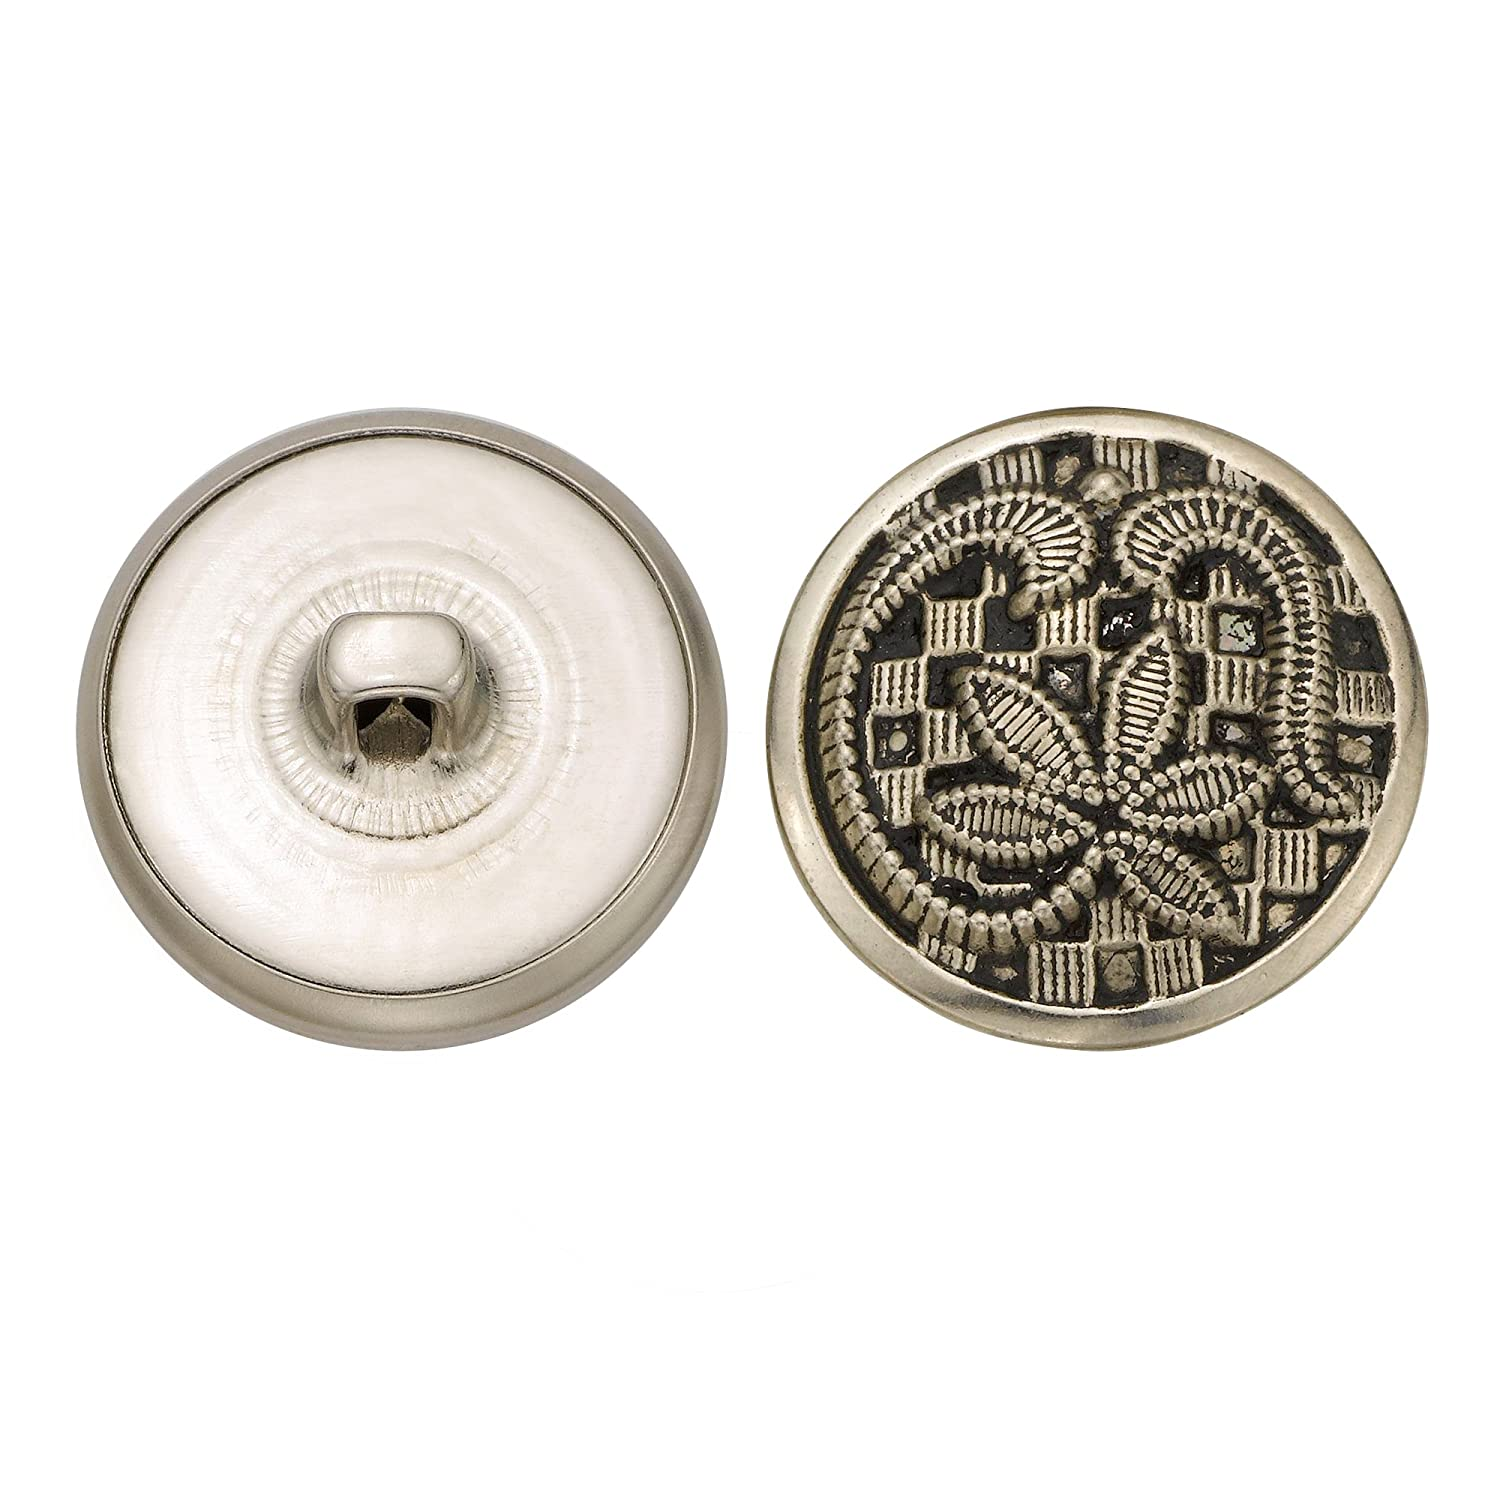 Antique Nickel Size 36 Ligne C/&C Metal Products 5140 Leaf Over Checkers Metal Button 36-Pack C/&C Metal Products Corp